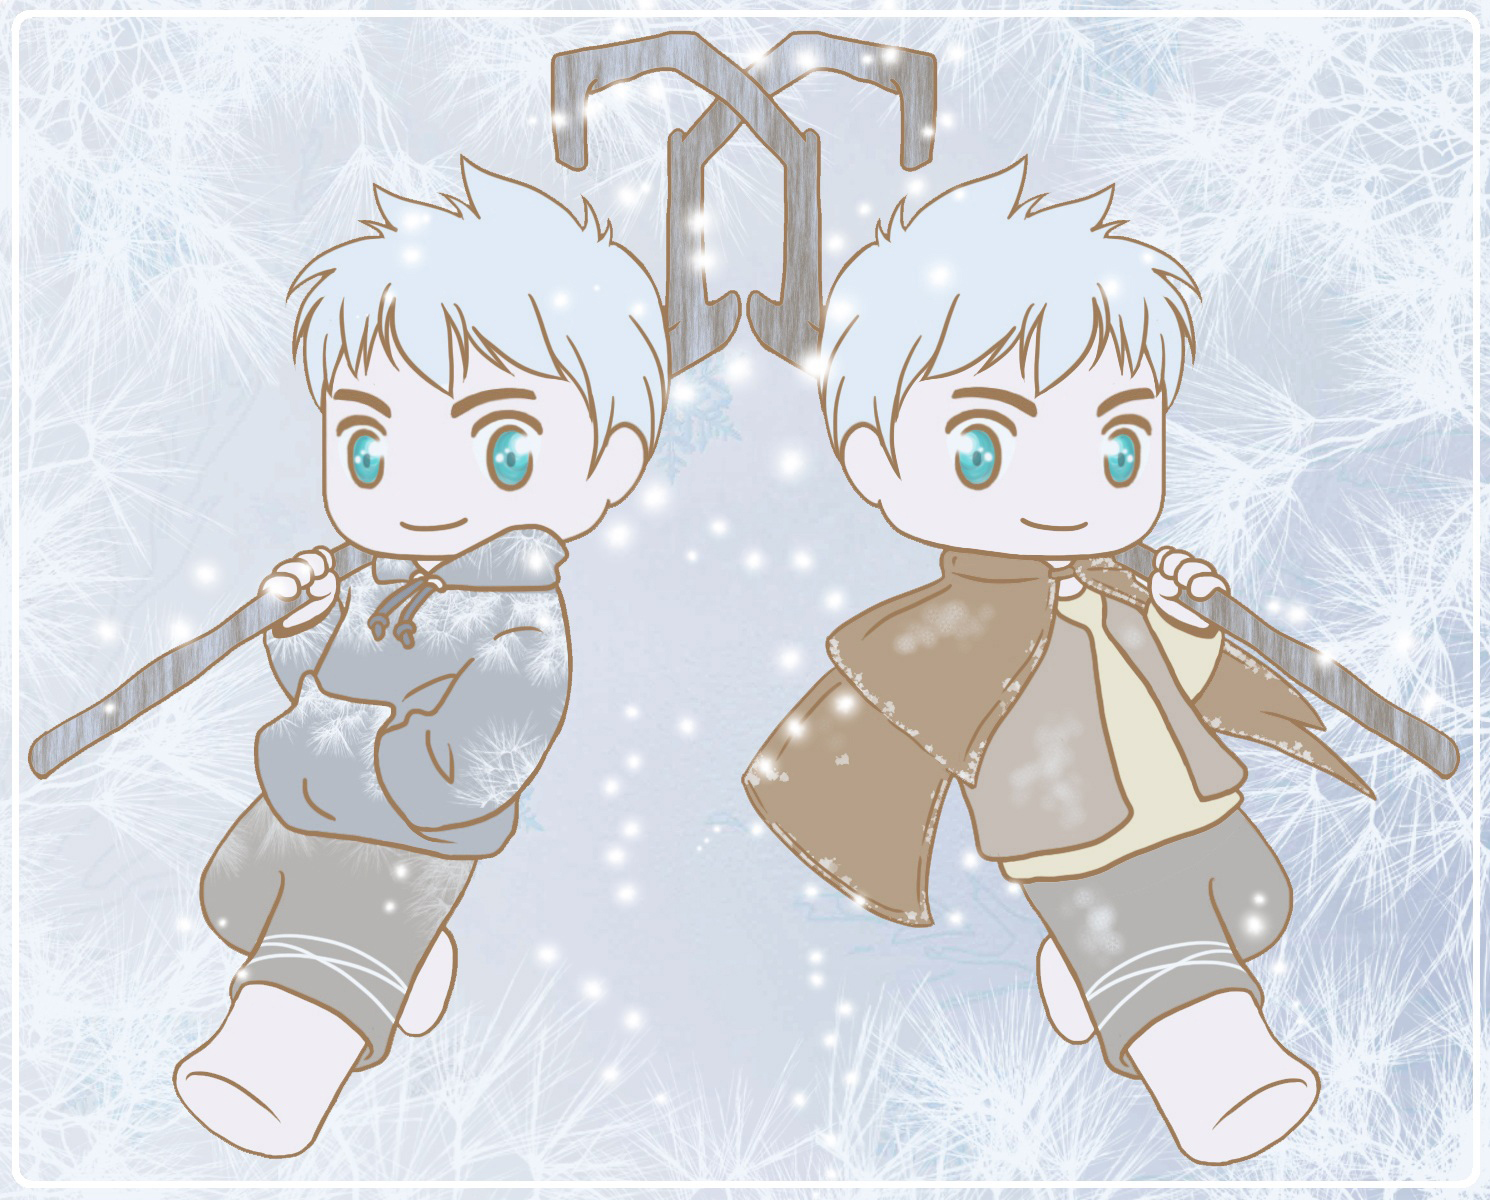 Jack Frost Now and The by MugenMusouka